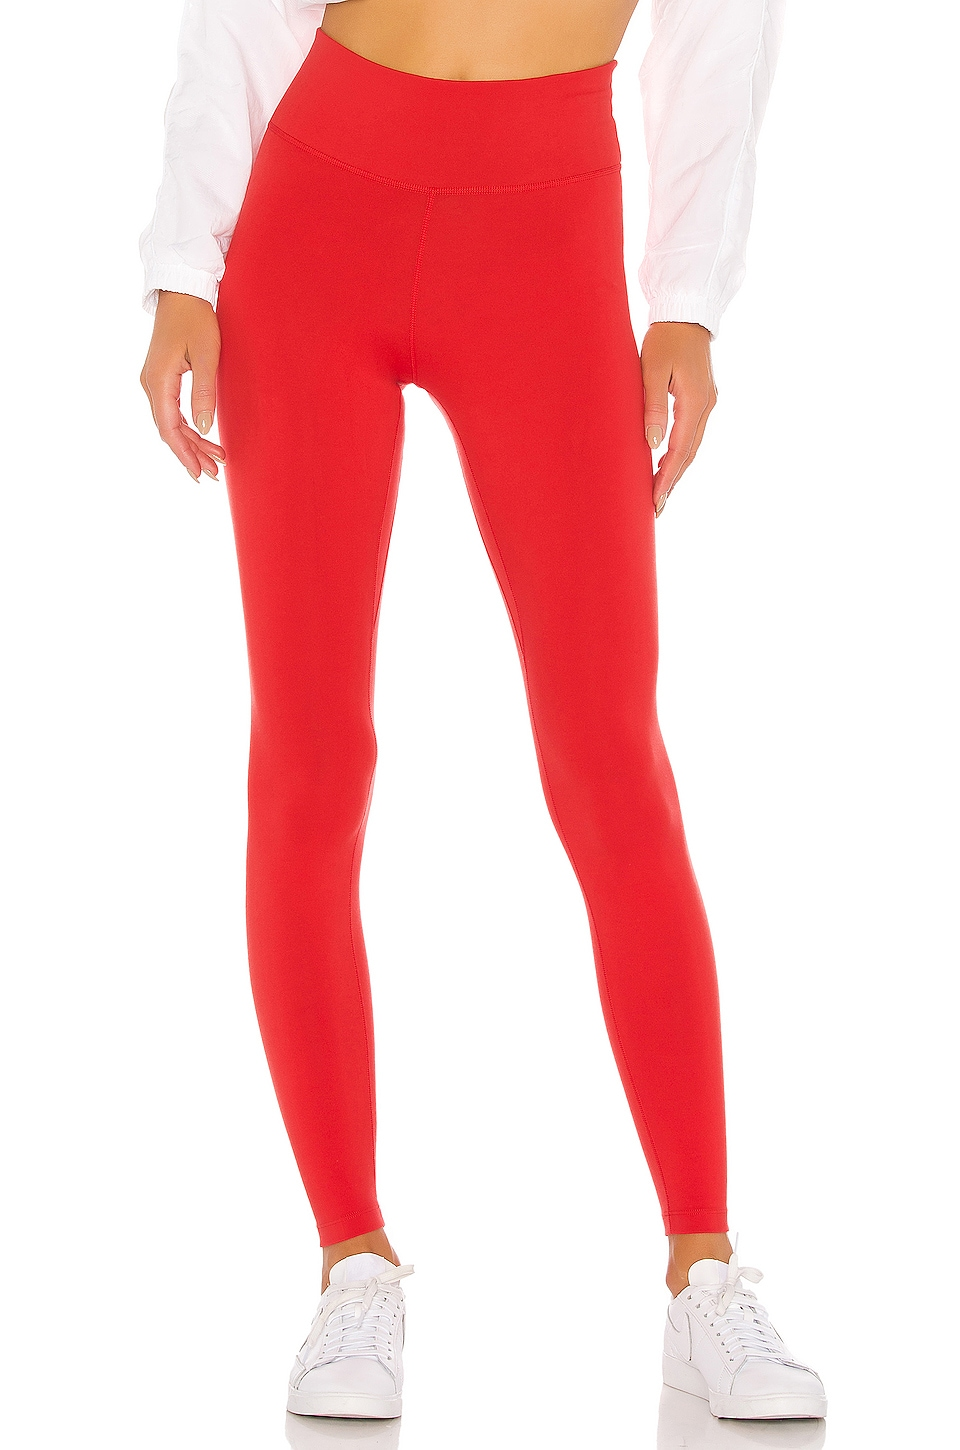 Nike One Tight in Track Red & White